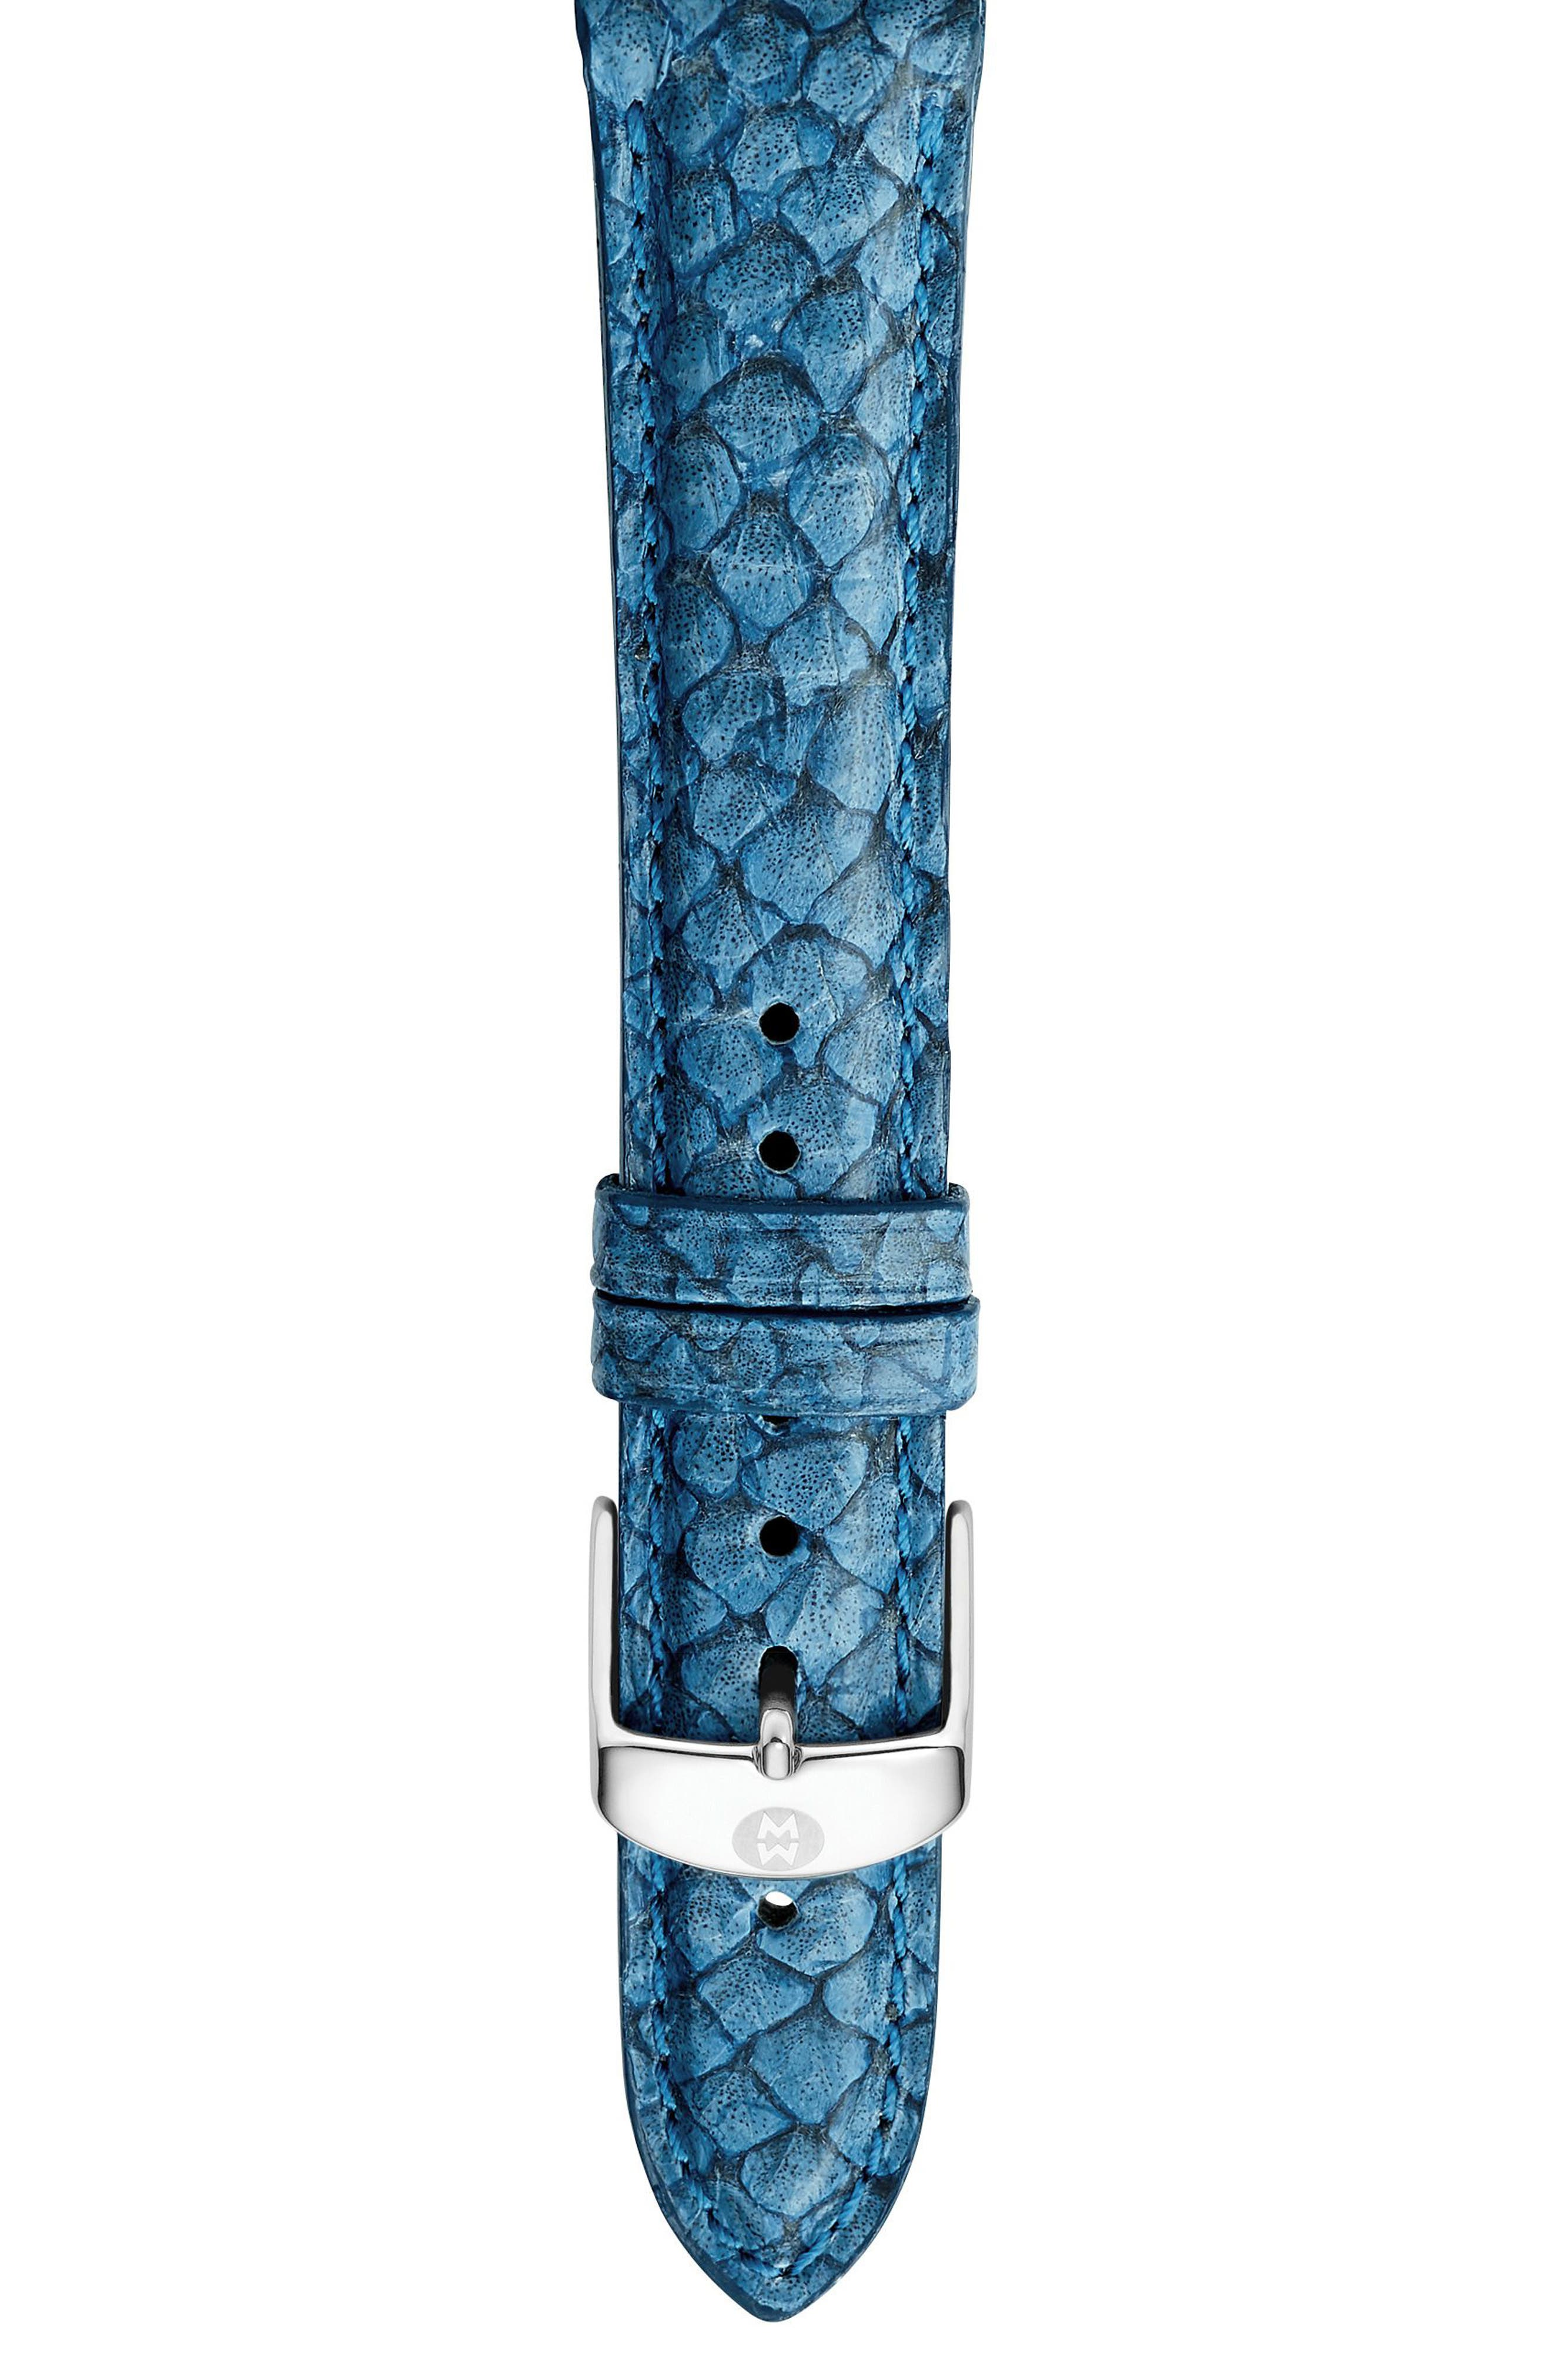 18mm Seamist Blue Fish Skin Watch Strap,                             Main thumbnail 1, color,                             Seamist